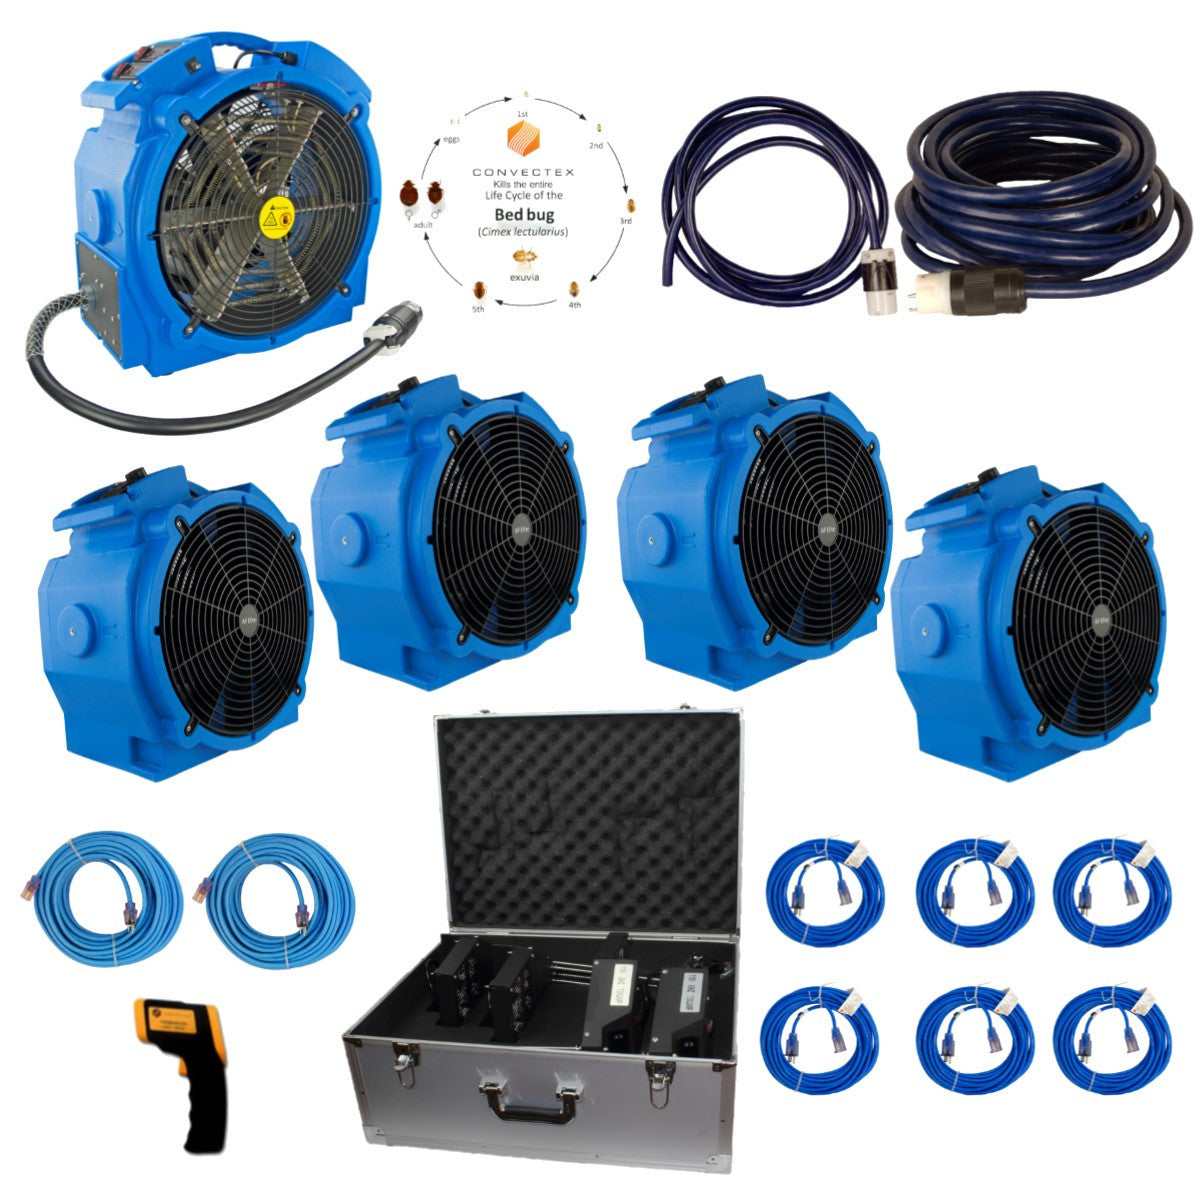 Apartment and Professional Bed Bug Heat Treatment Equipment